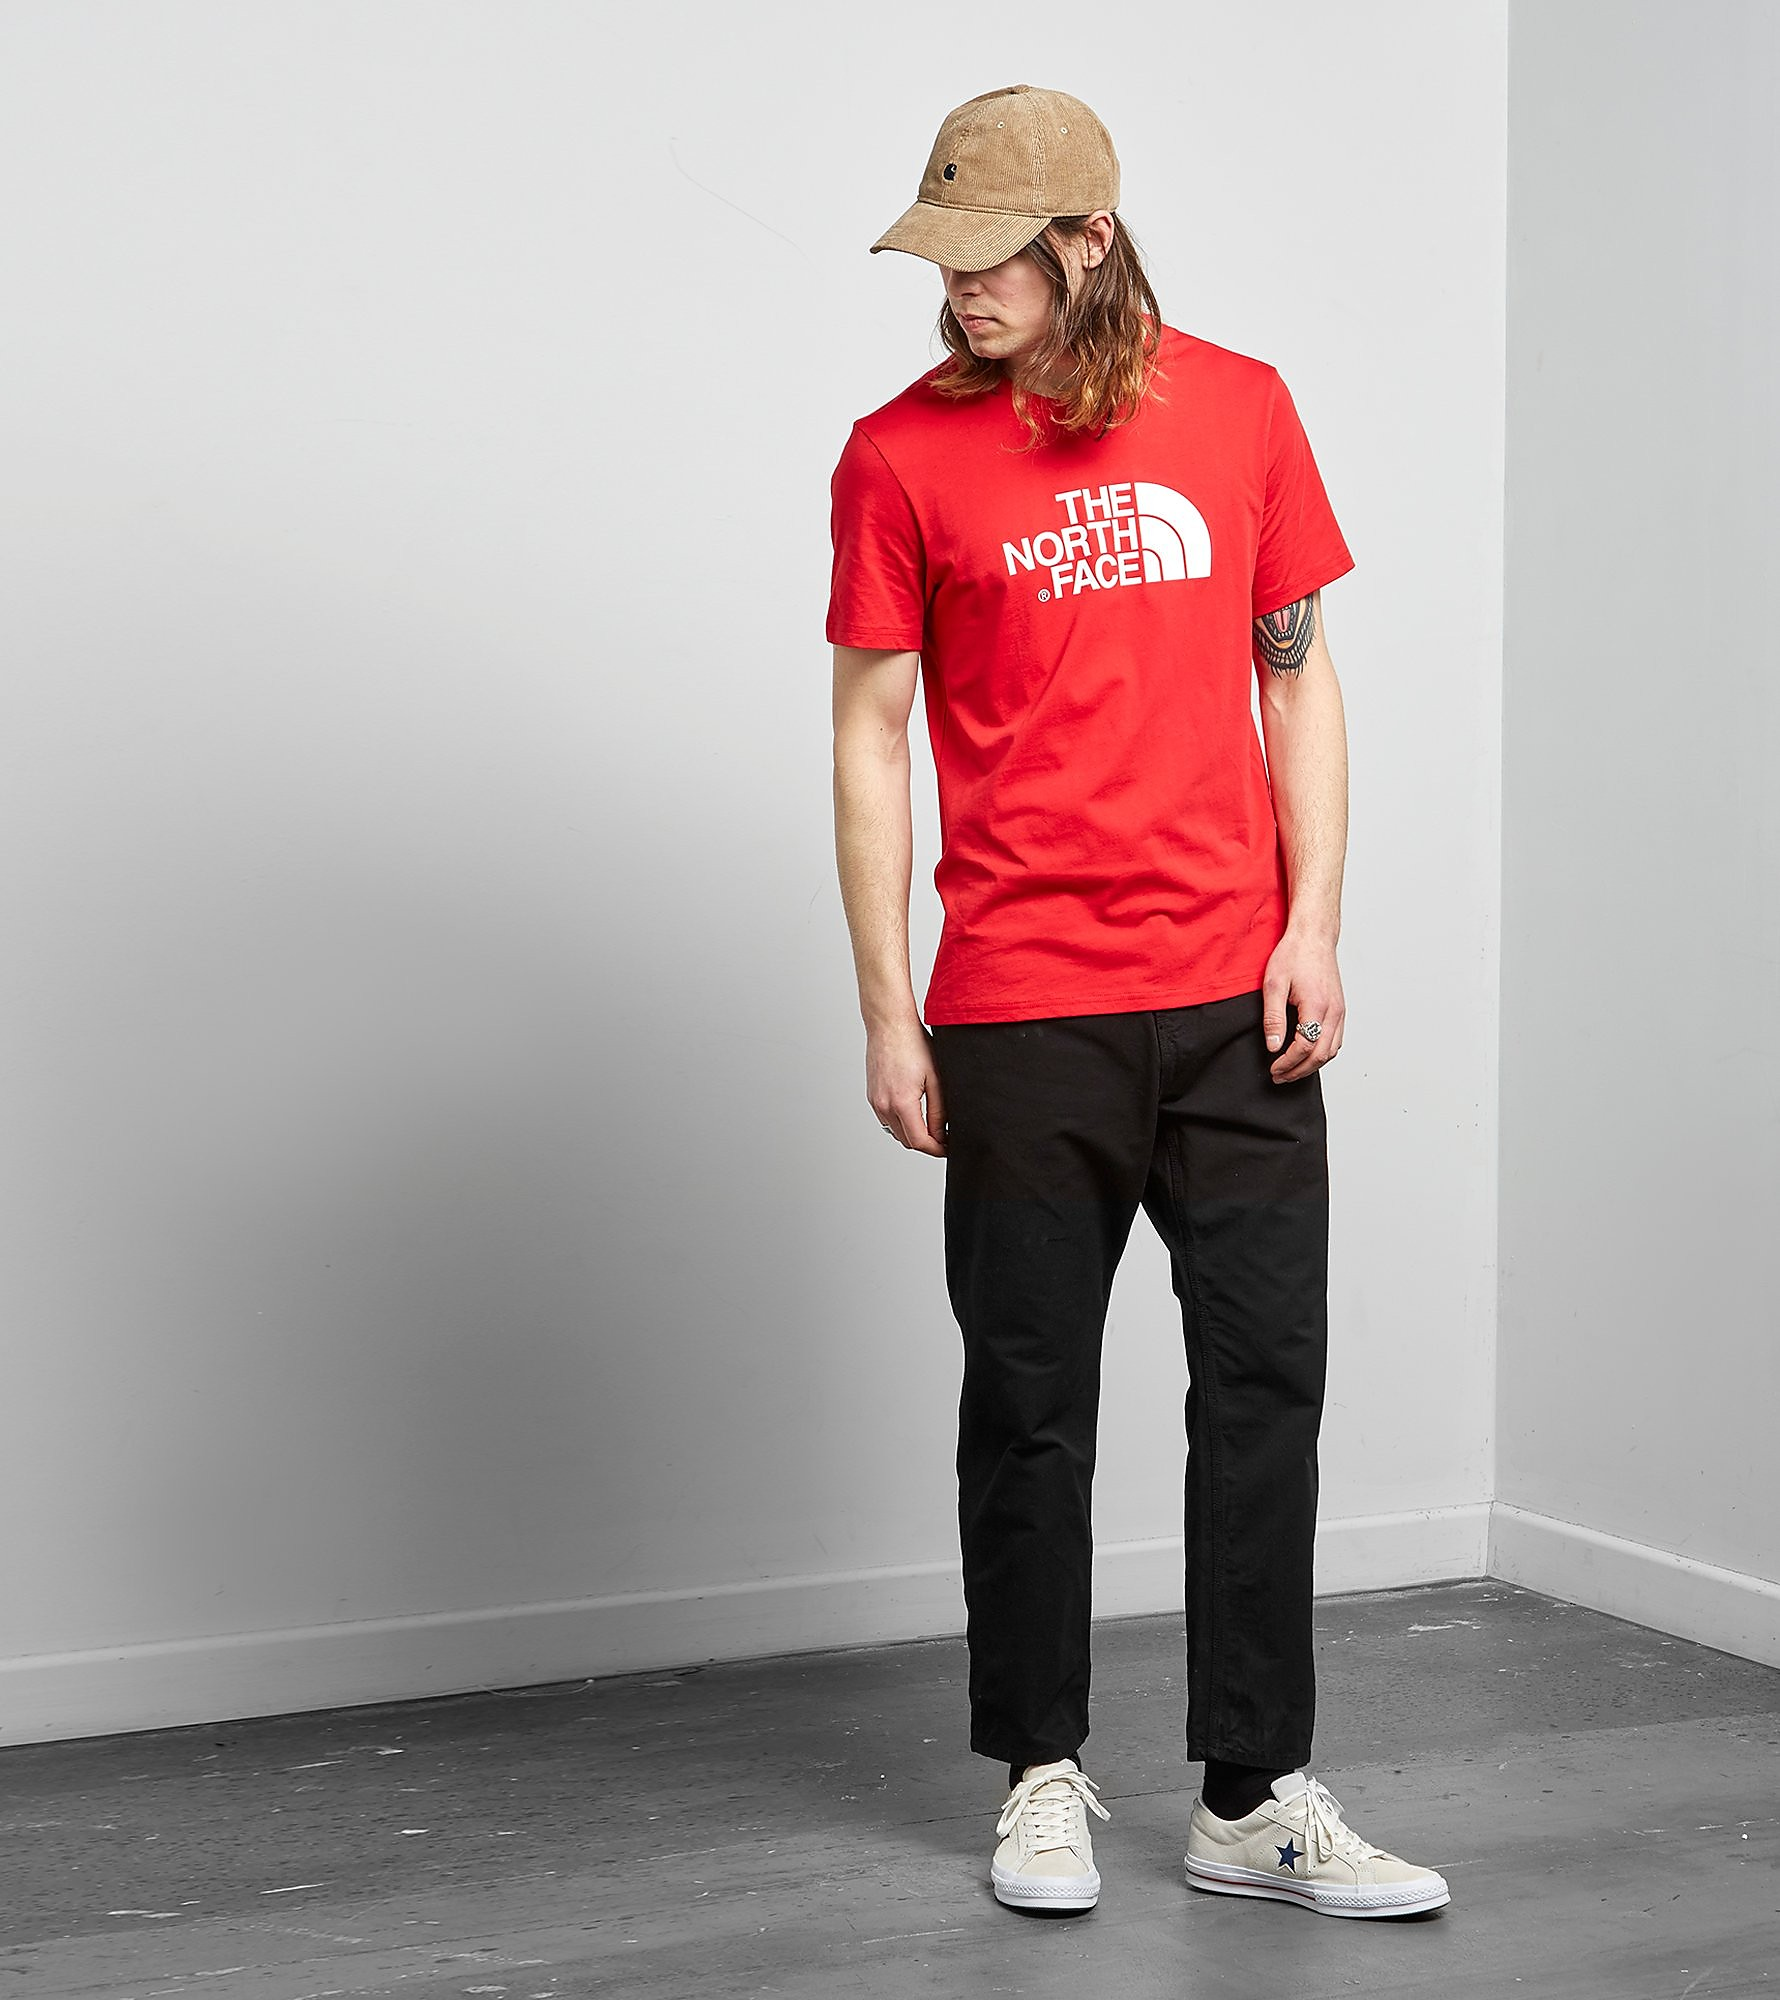 The North Face Short Sleeve Easy T-Shirt